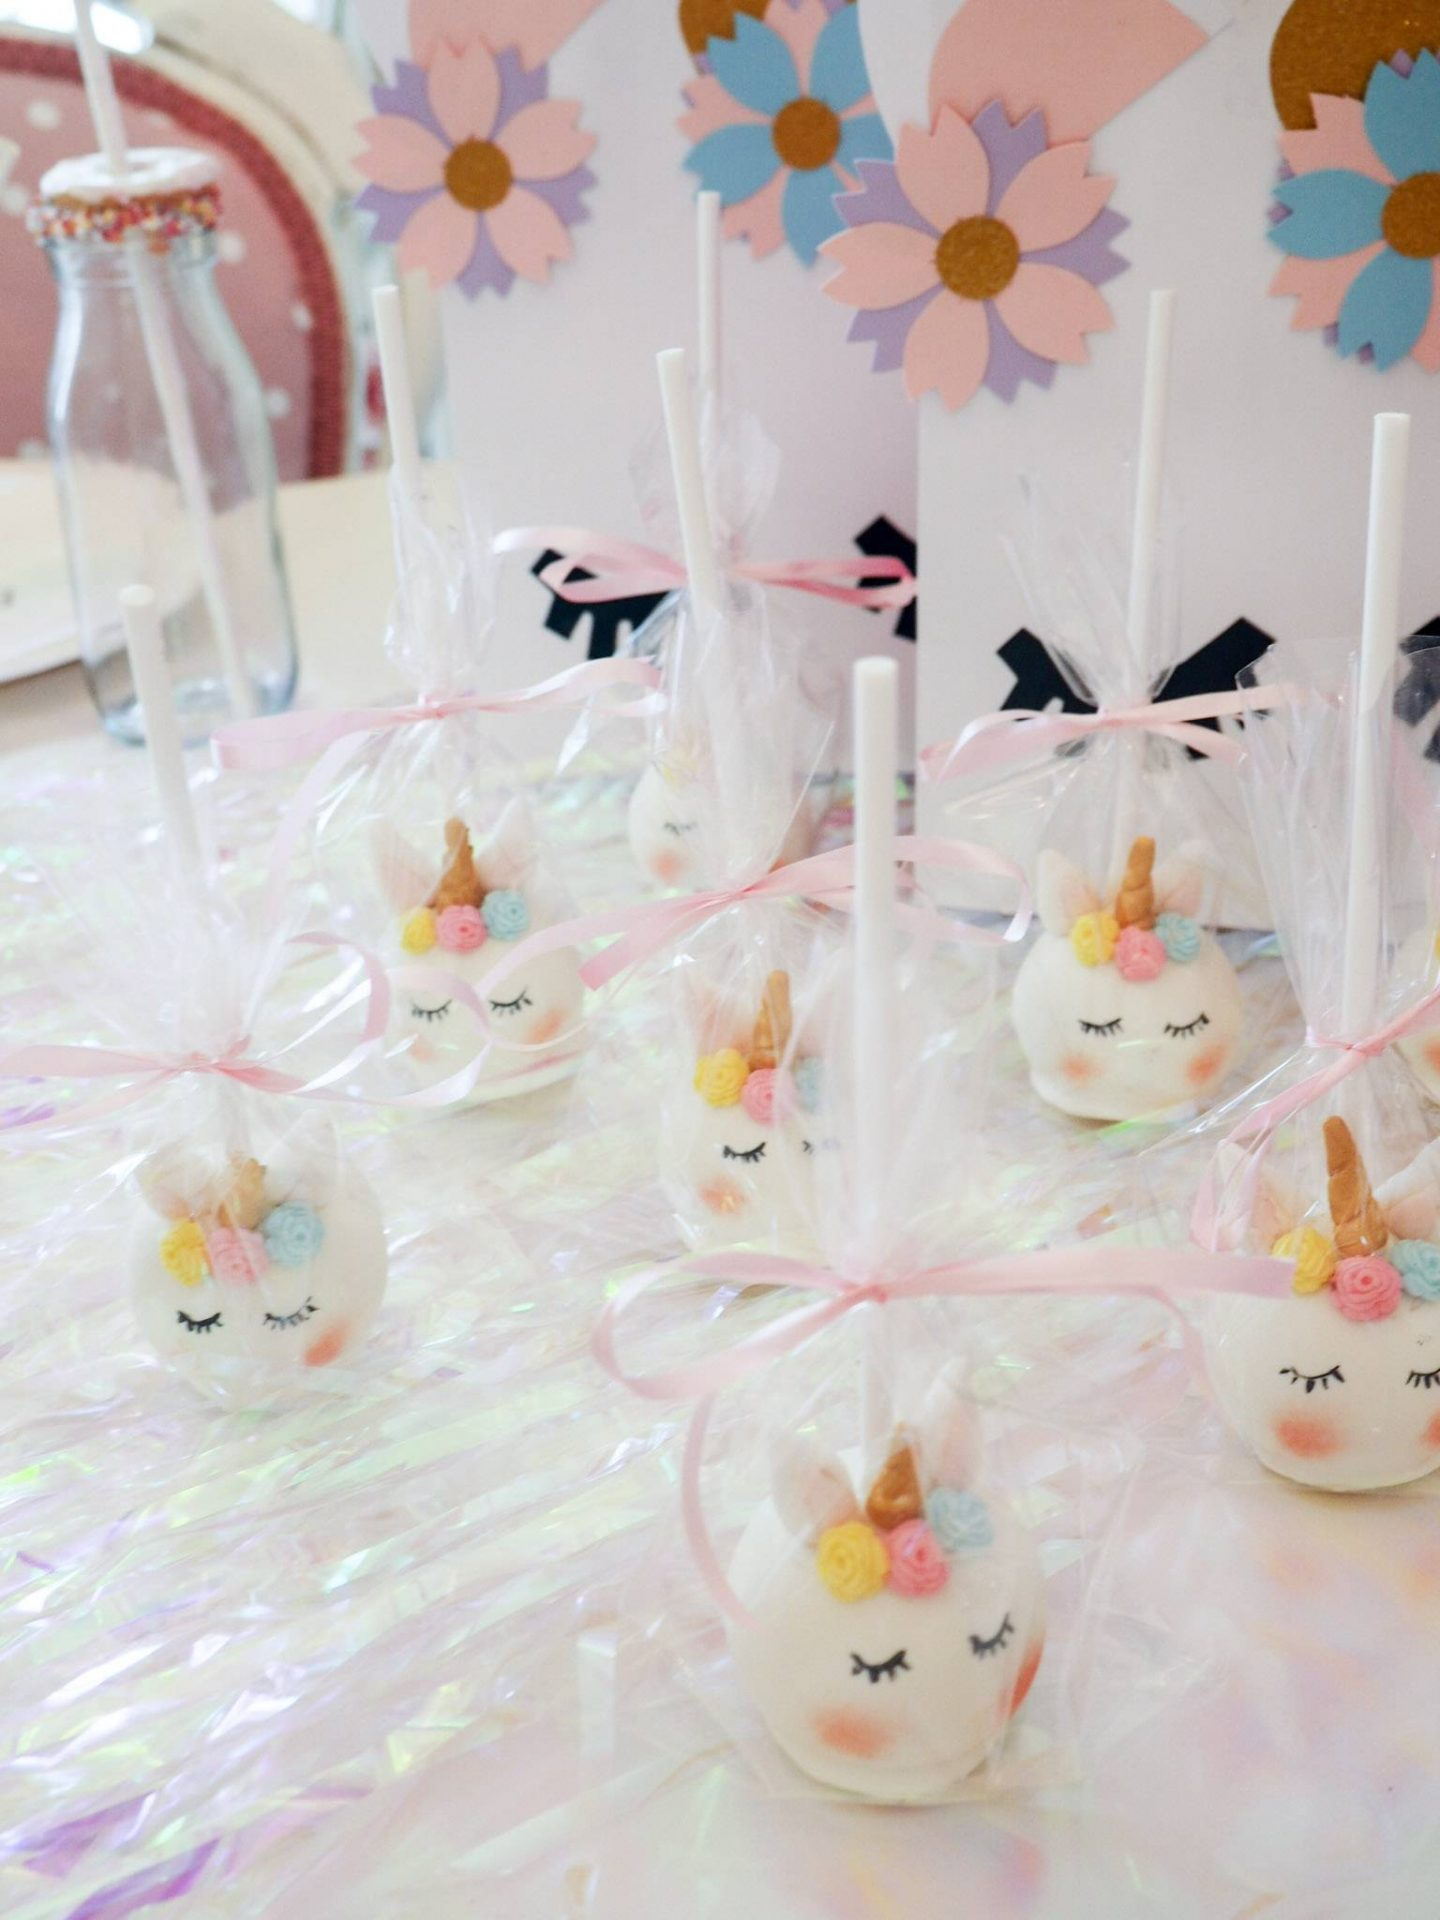 LIFESTYLE: Unicorn Pamper Party – The Chic Petite